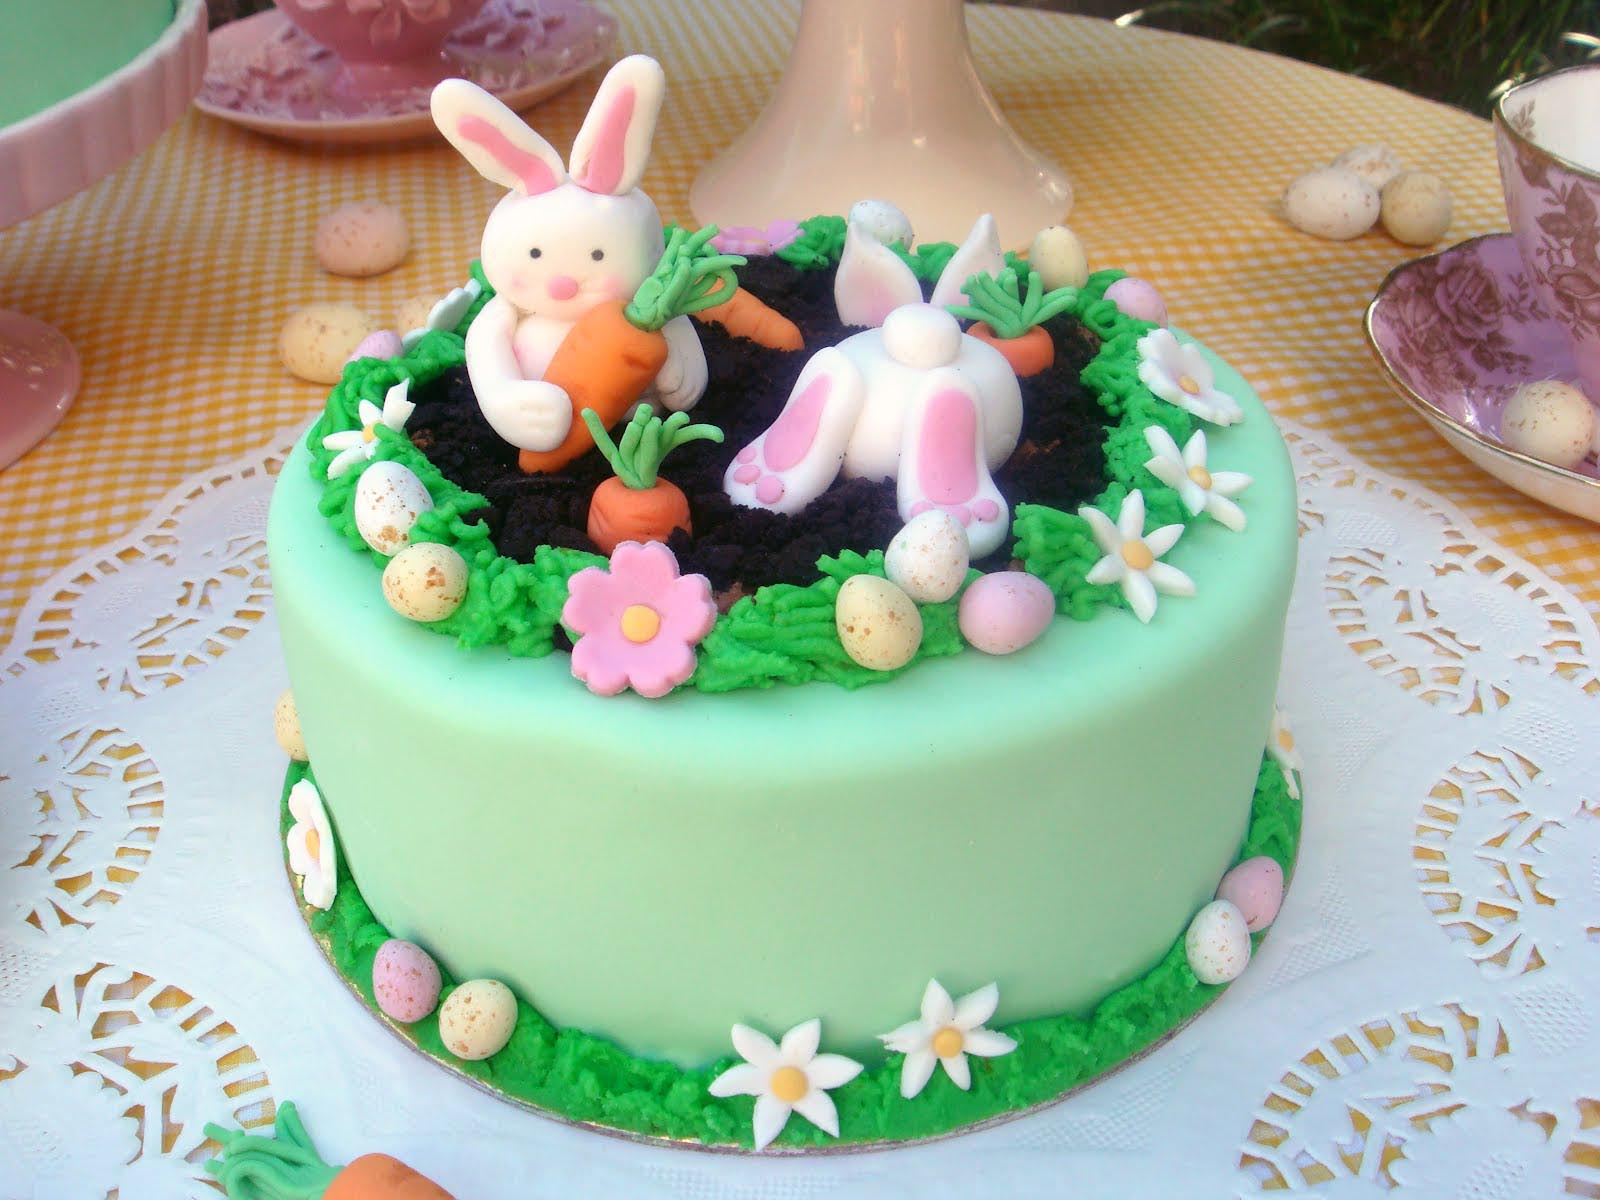 25 Easter Cakes And Recipe Ideas To Tempt Your Tastebuds